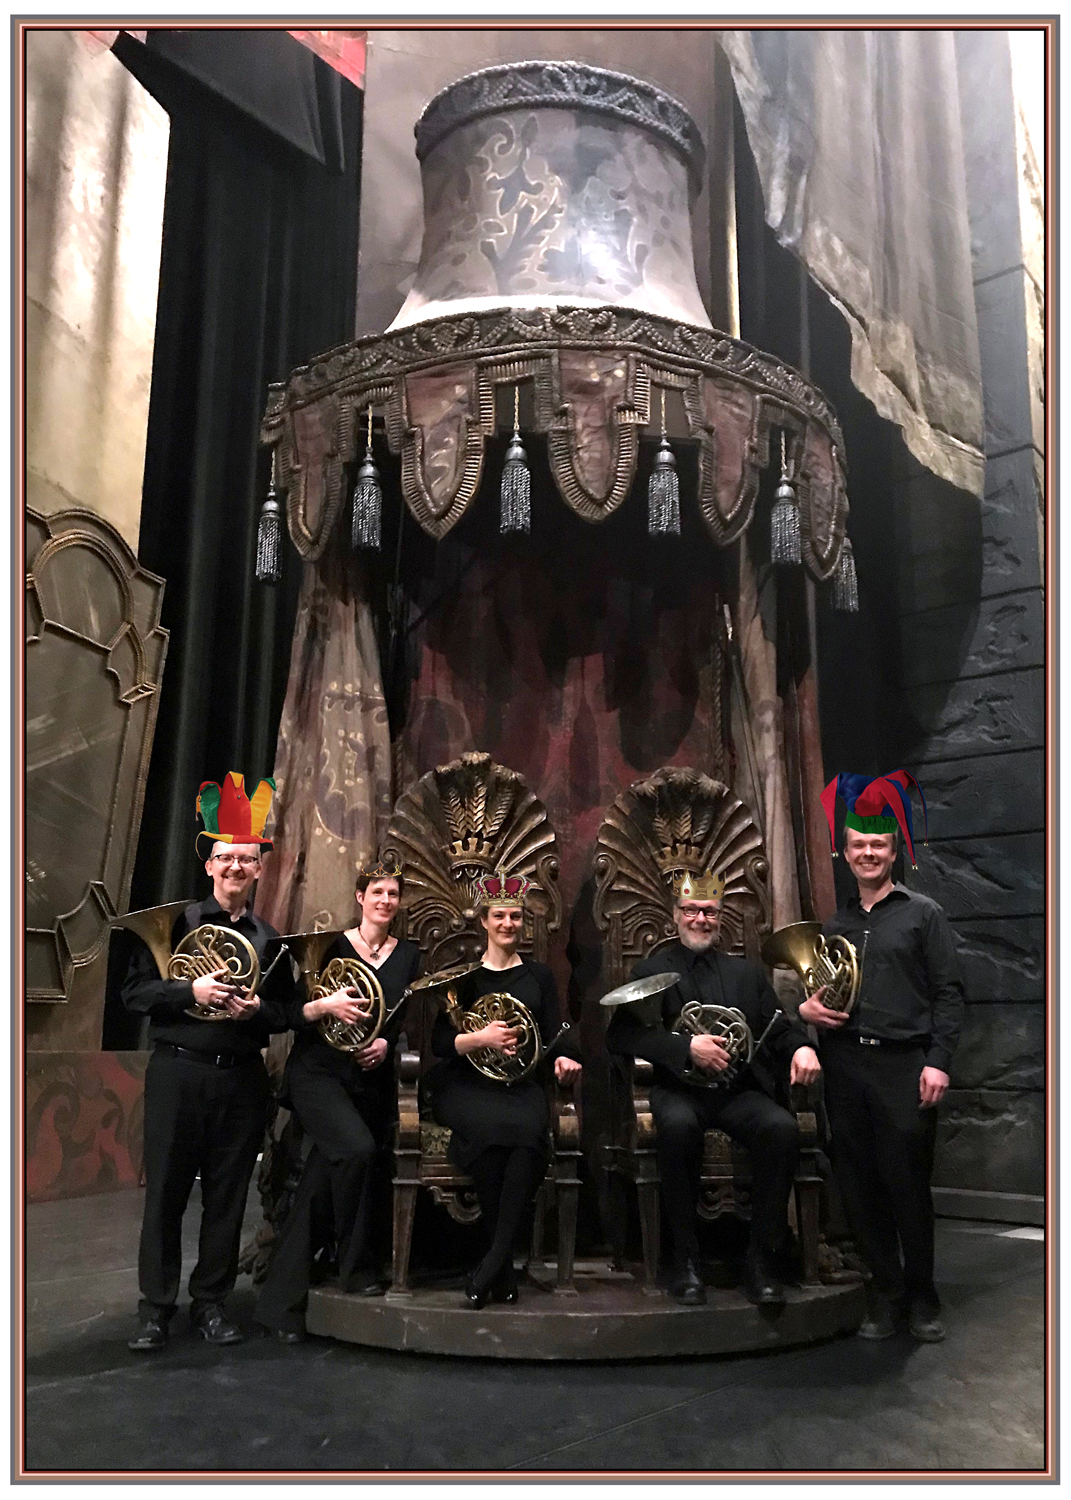 The Horns of 'Sleeping Beauty'